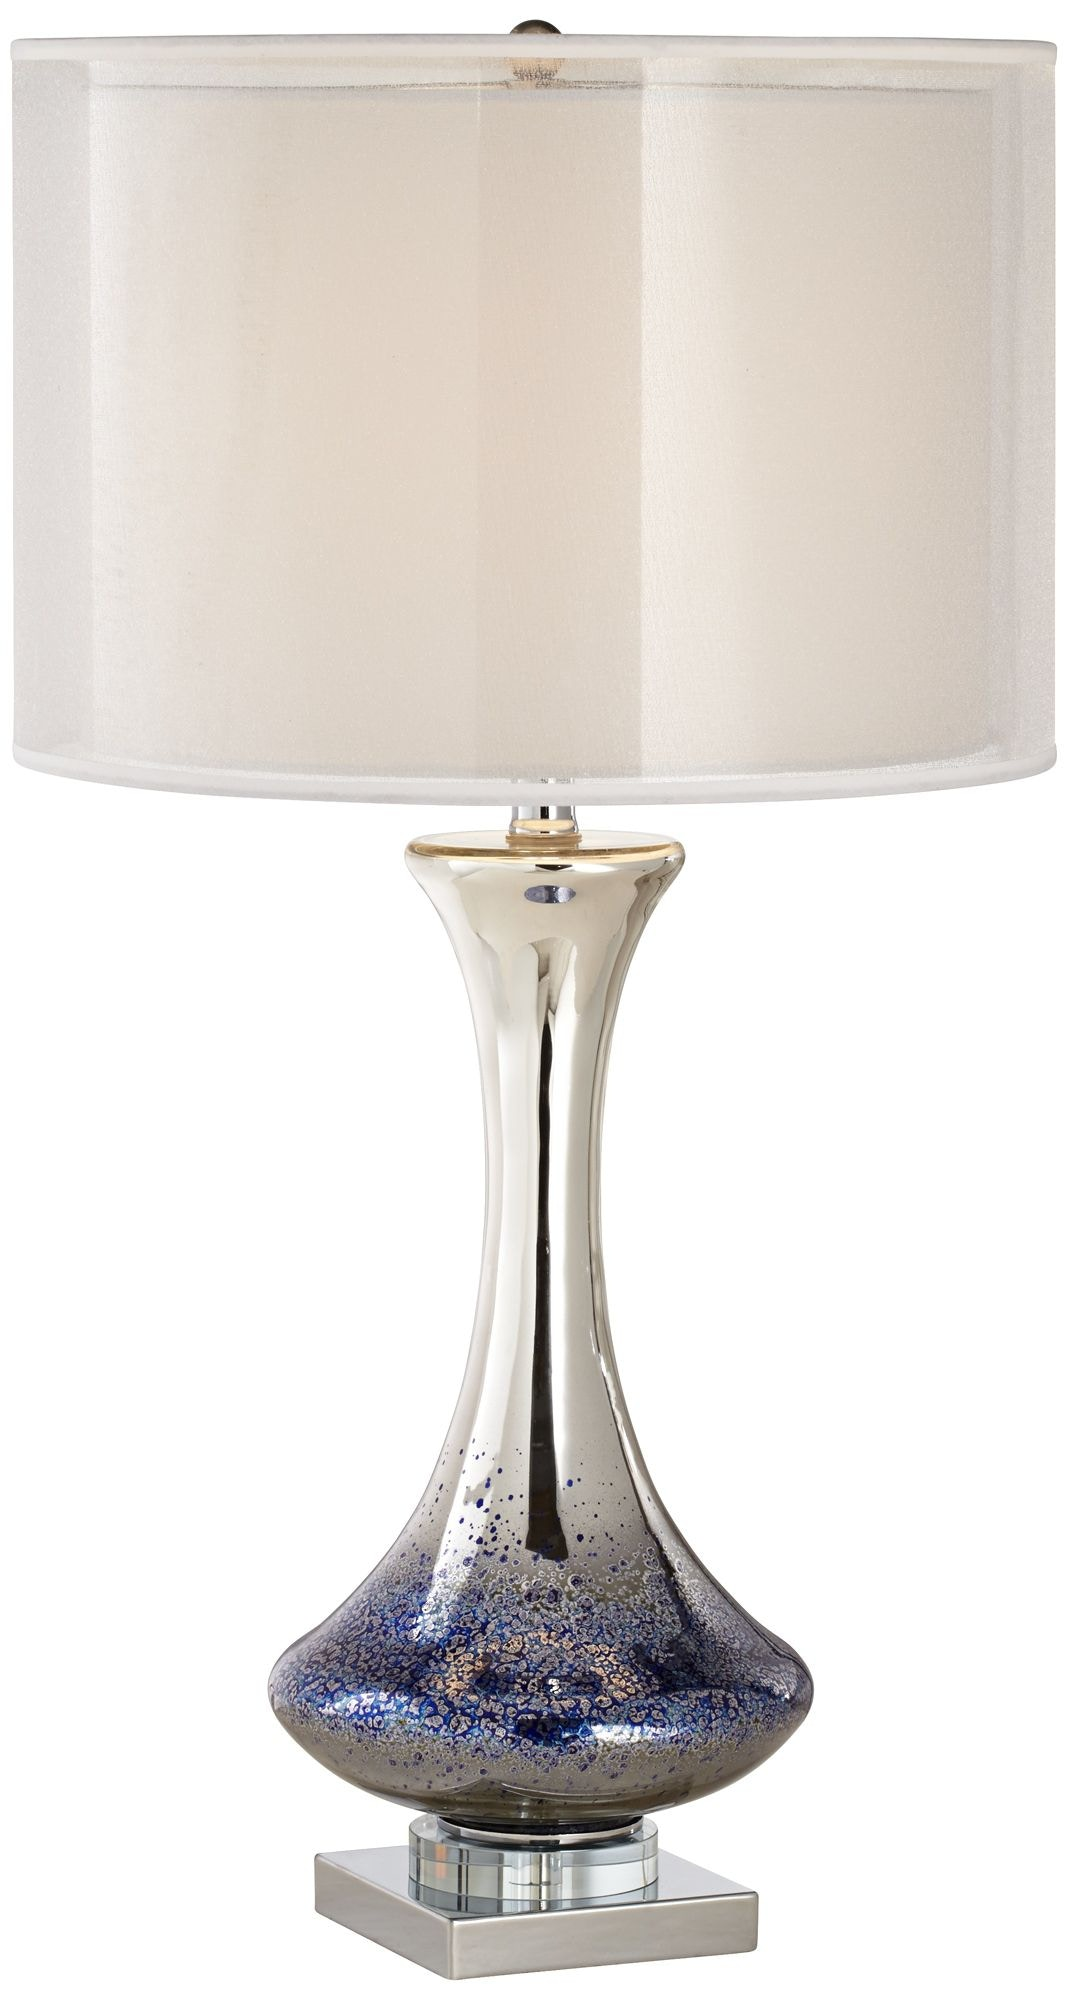 Pacific Coast Lighting Lamps And Lighting Blue Mercuri Table Lamp 87